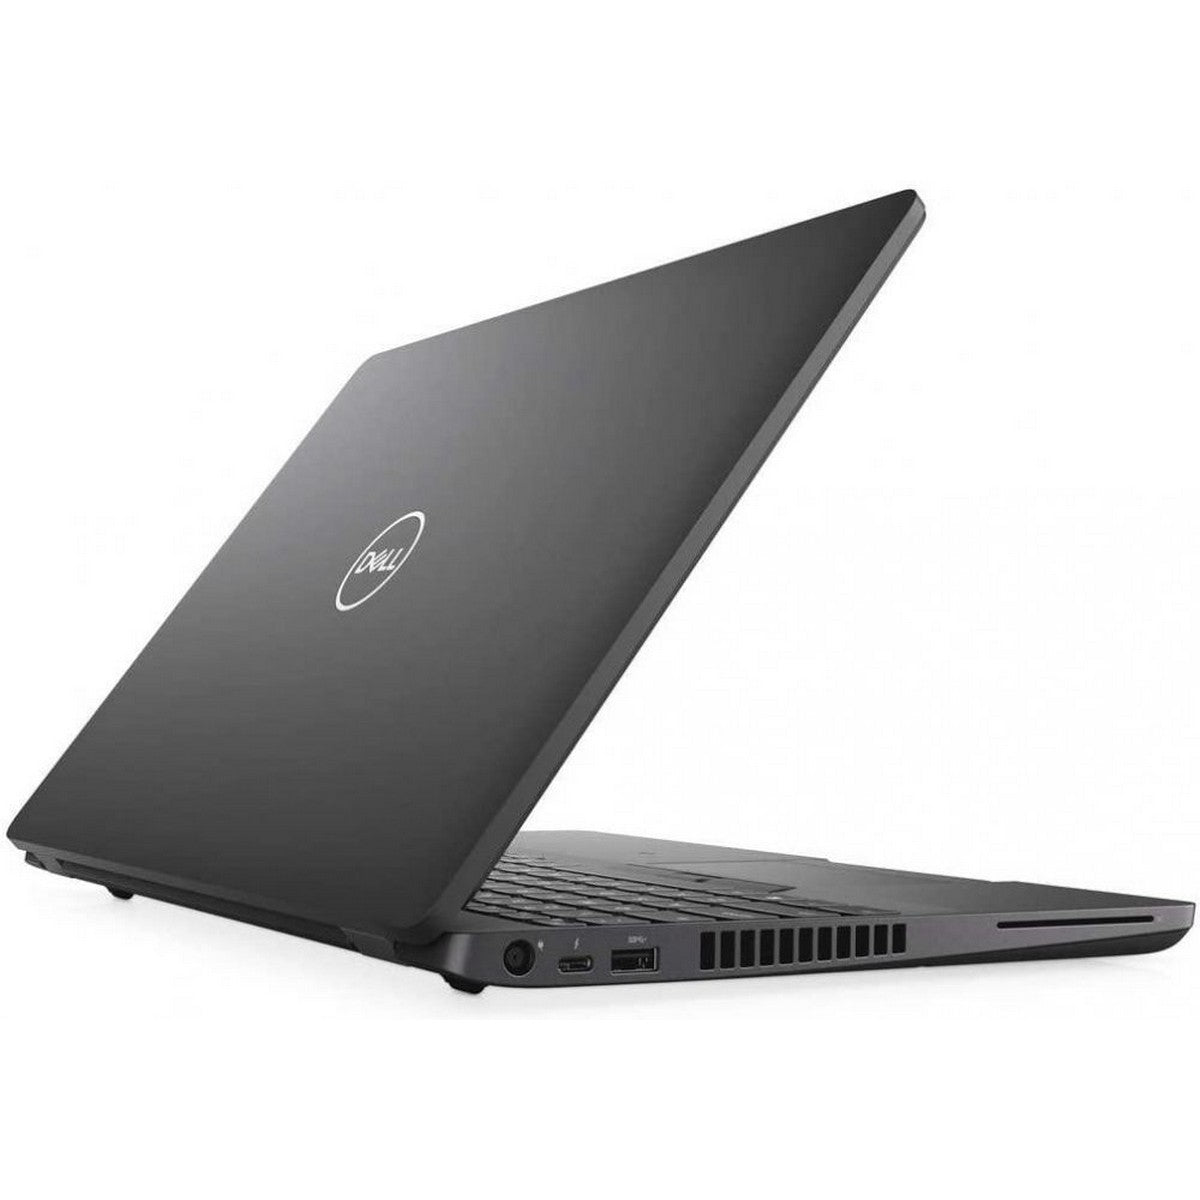 Dell Latitude 5500 Laptop 15.6'' FHD , Intel Core i5 i5-8265U 1.6GHz 6M Cache up to 3.90 GHz, 4GB RAM, Intel UHD620 GPU, 1TB HDD, Windows 10 Pro, Black